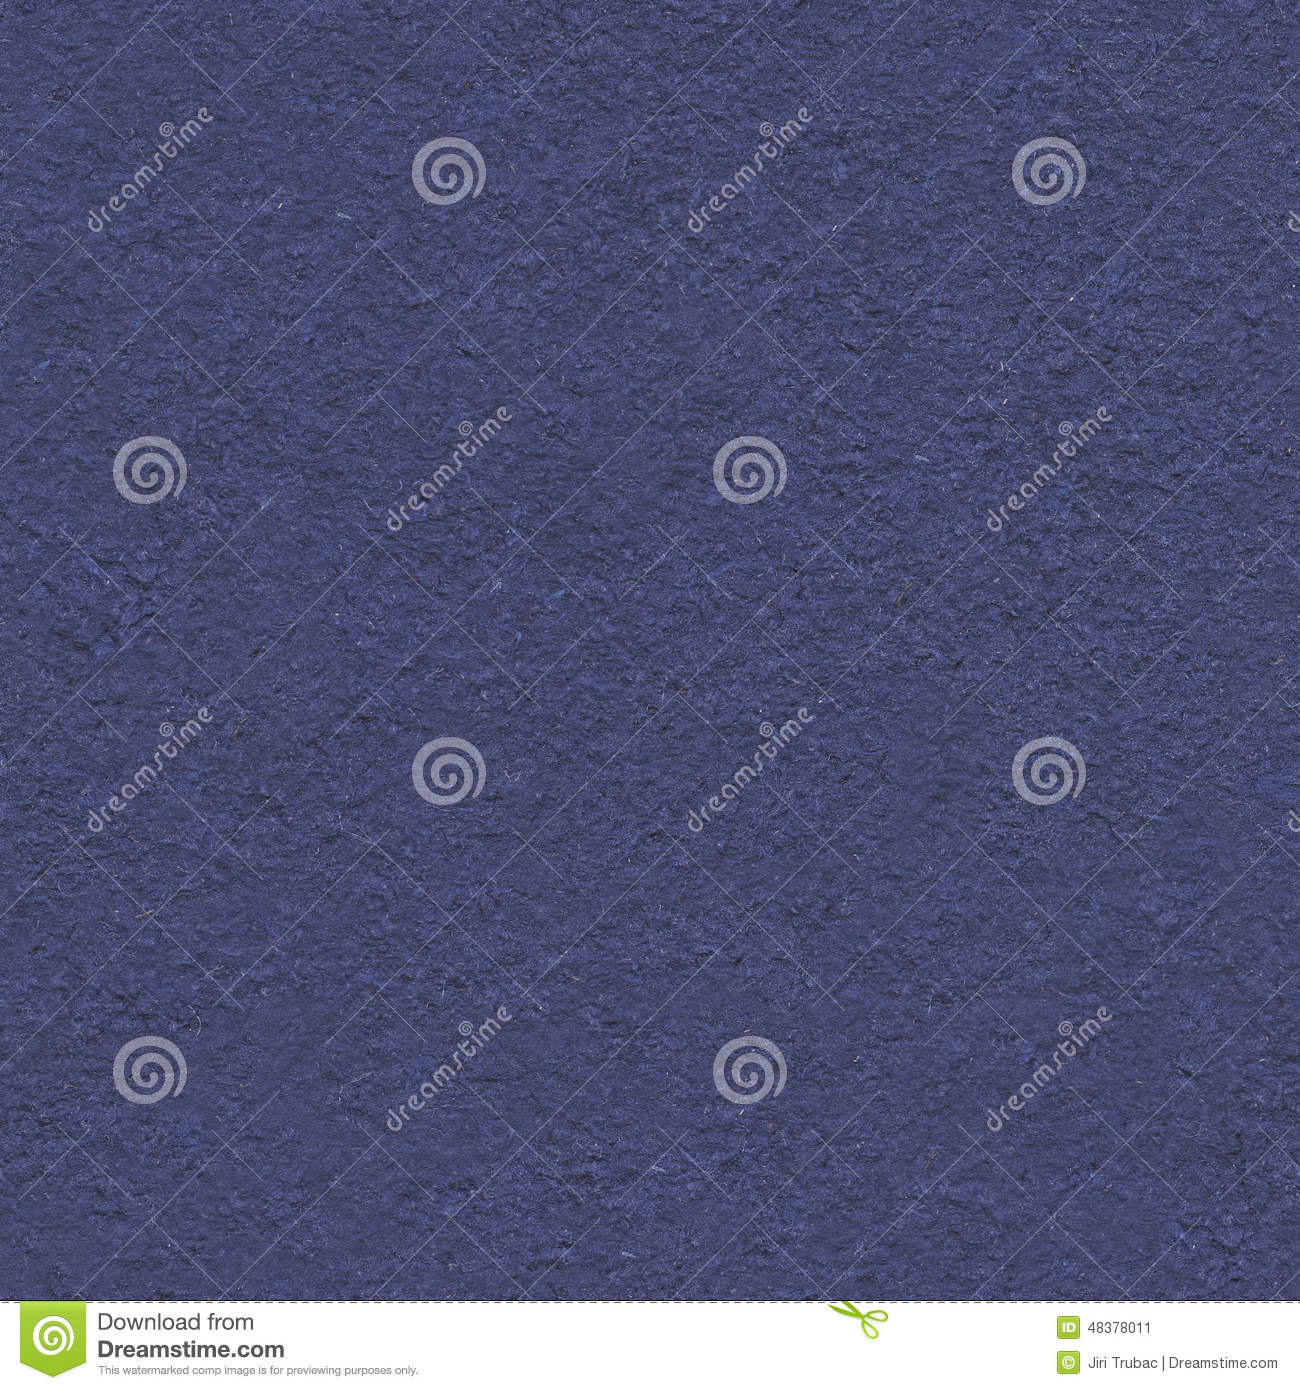 Handmade dark blue seamless paper, crushed fibers in background